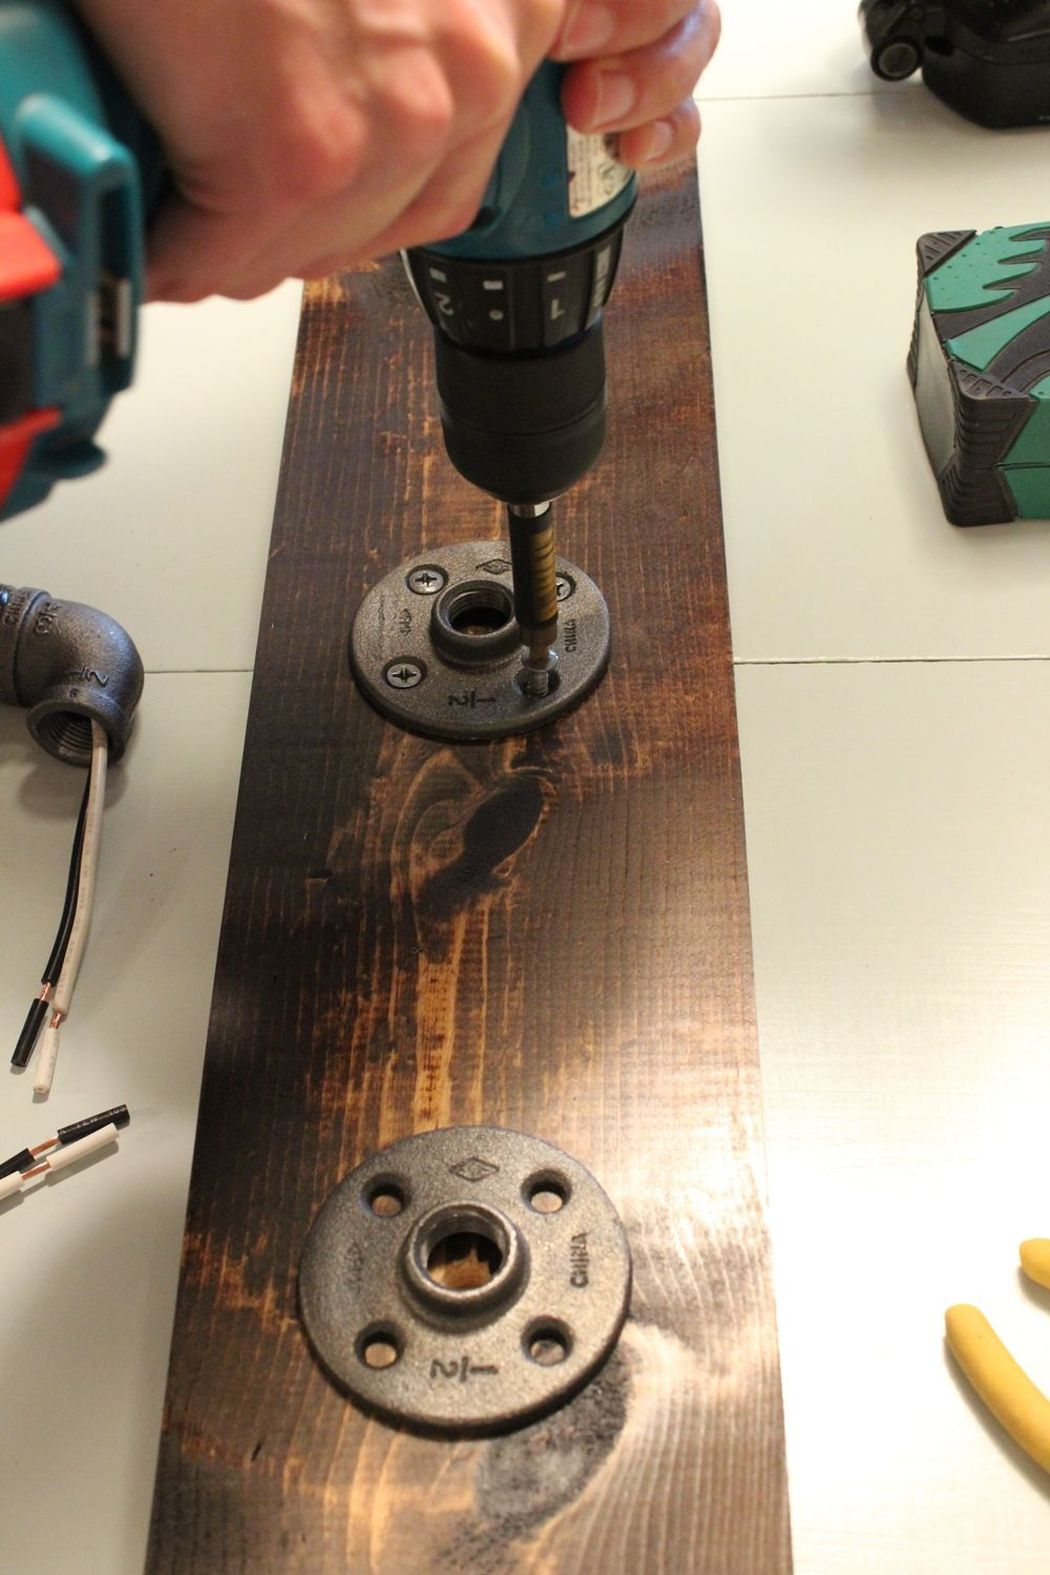 Drilling hole for the the lamp drips